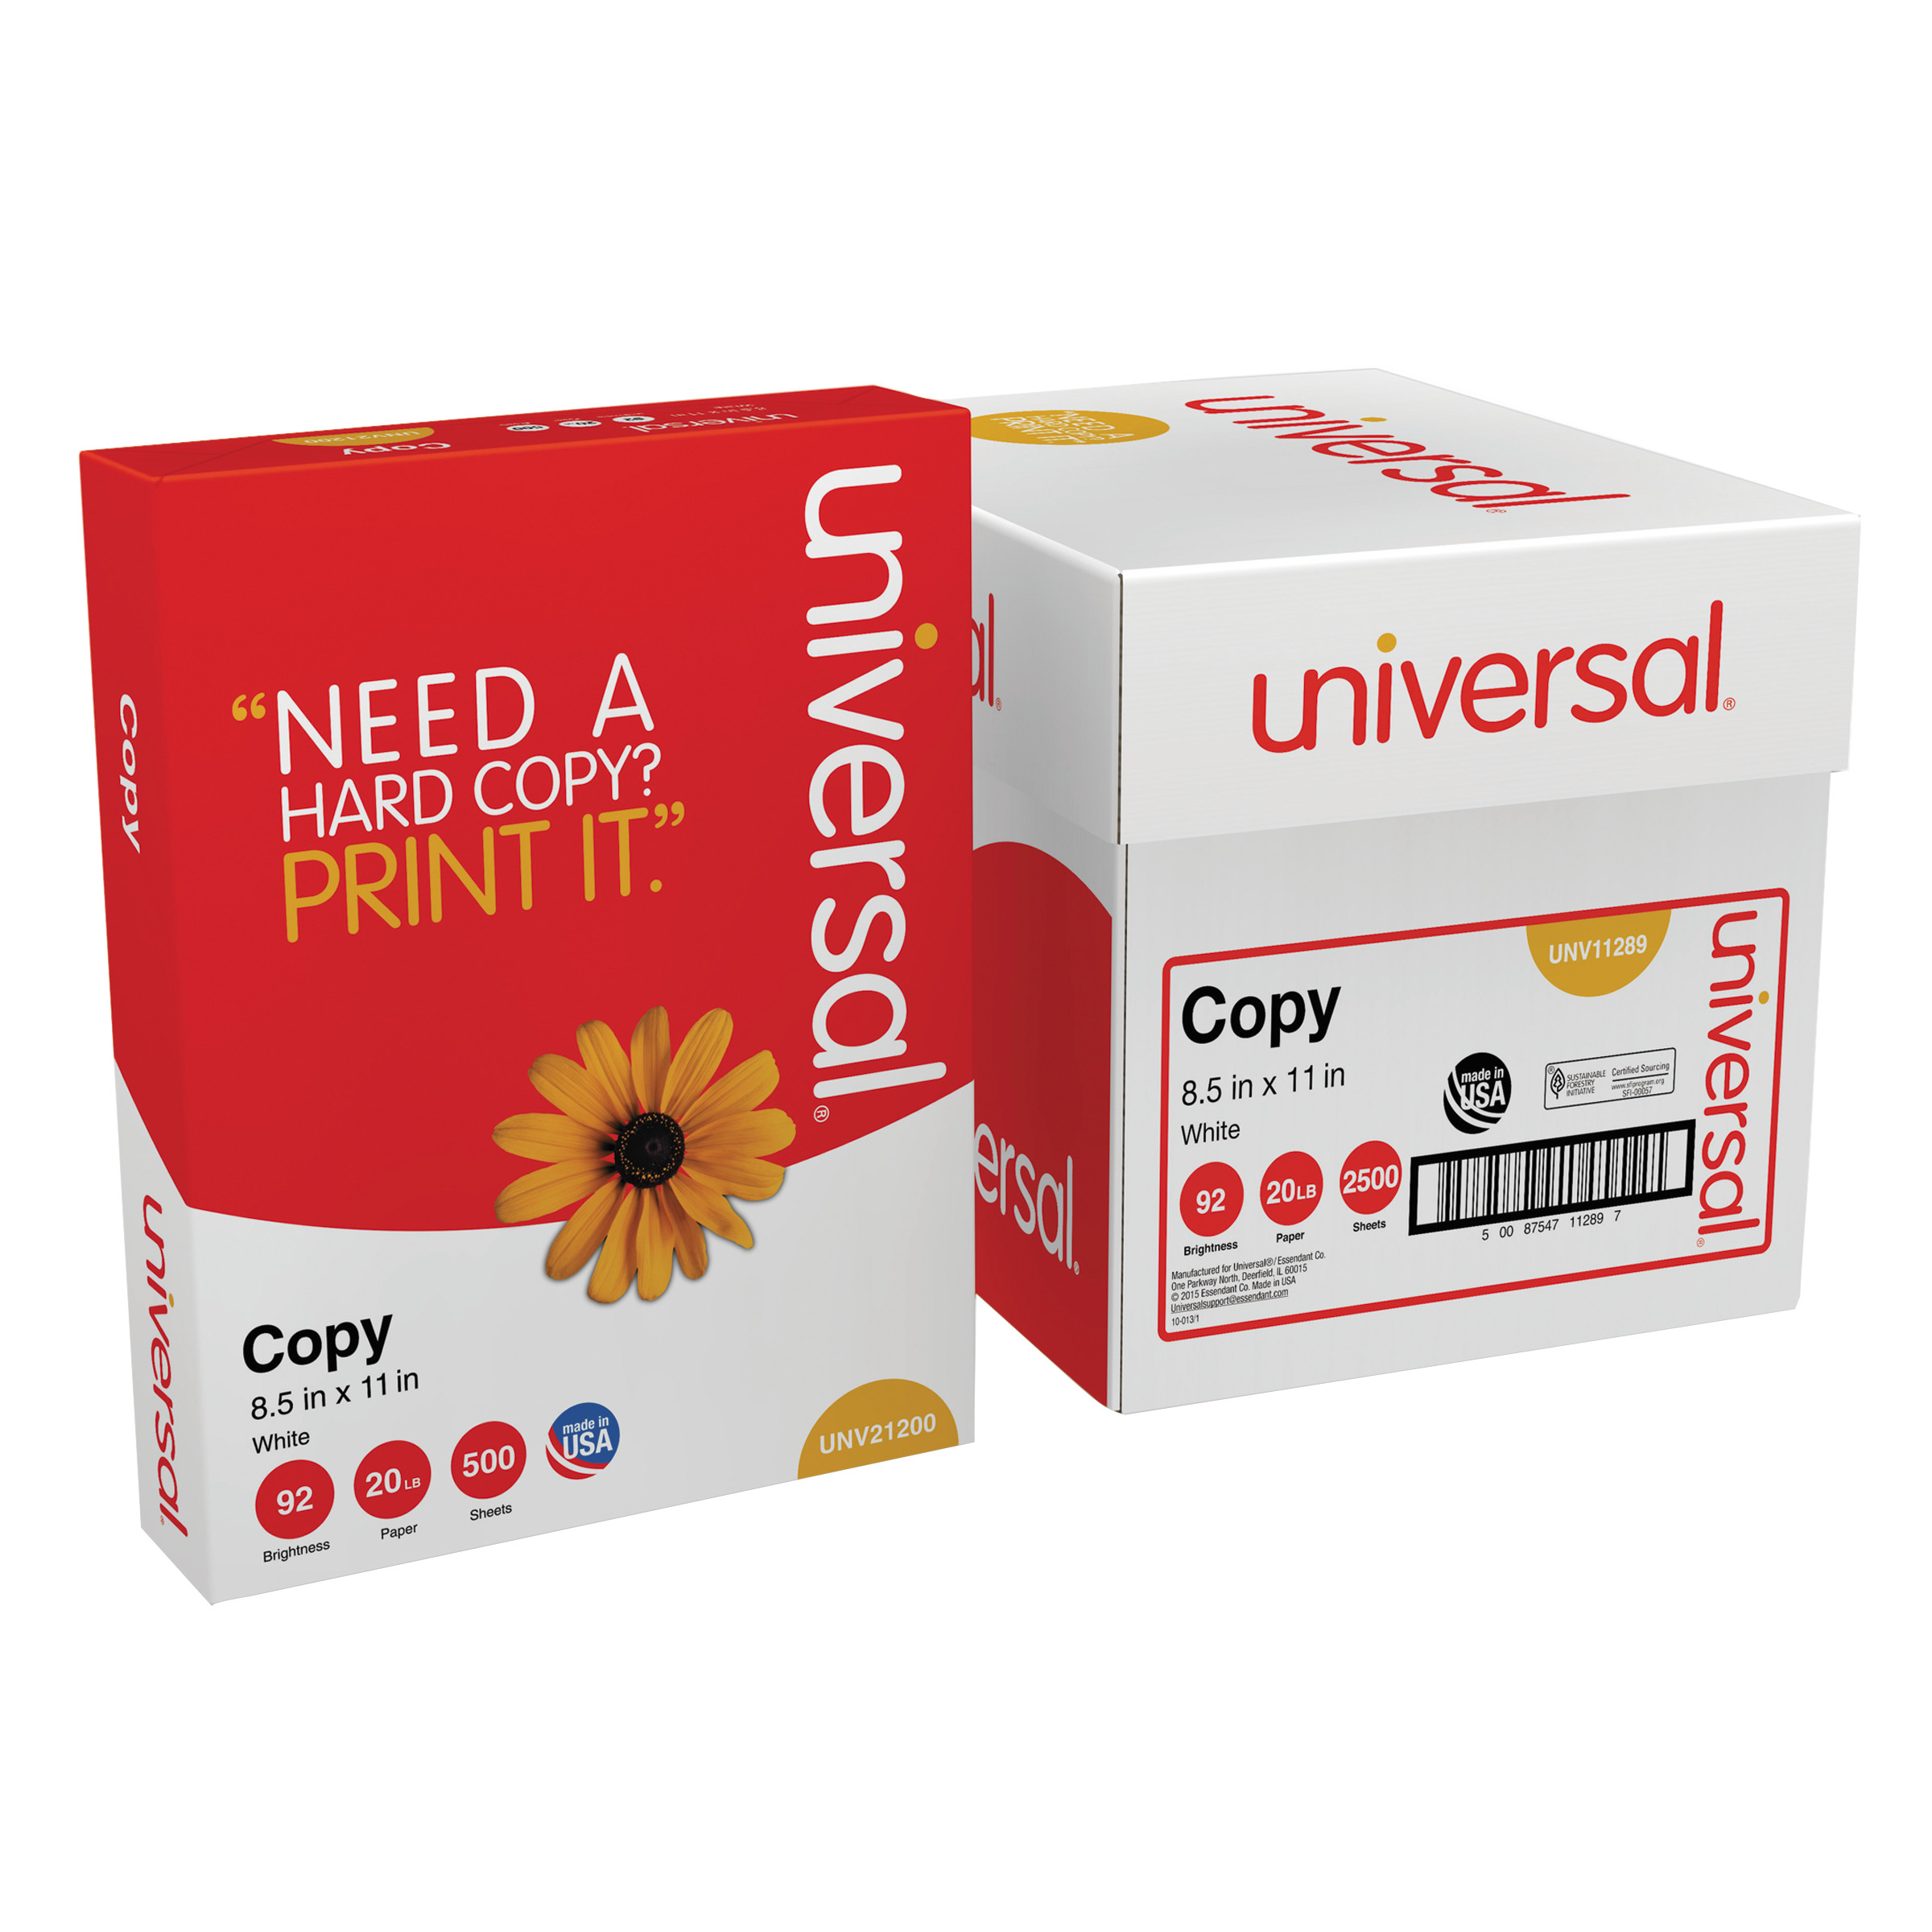 "Universal Copy Paper Convenience Carton, 92 Brightness, 20lb, 8-1/2"" x 11"", White, 2500-Countn"